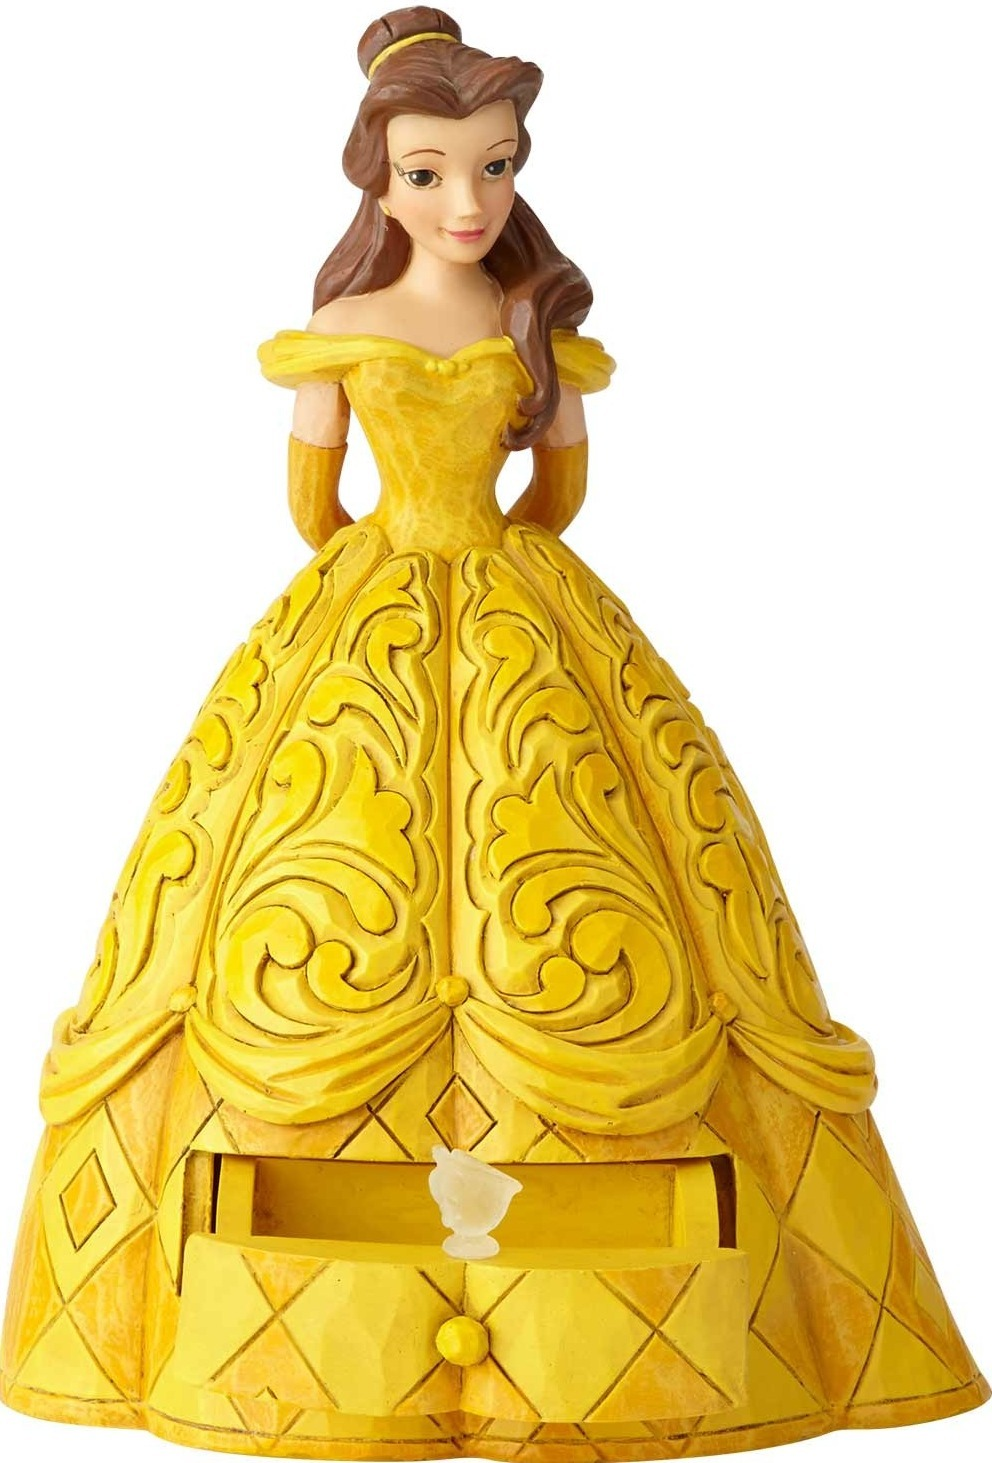 Disney Traditions by Jim Shore 6000963 Belle with Clear Charm